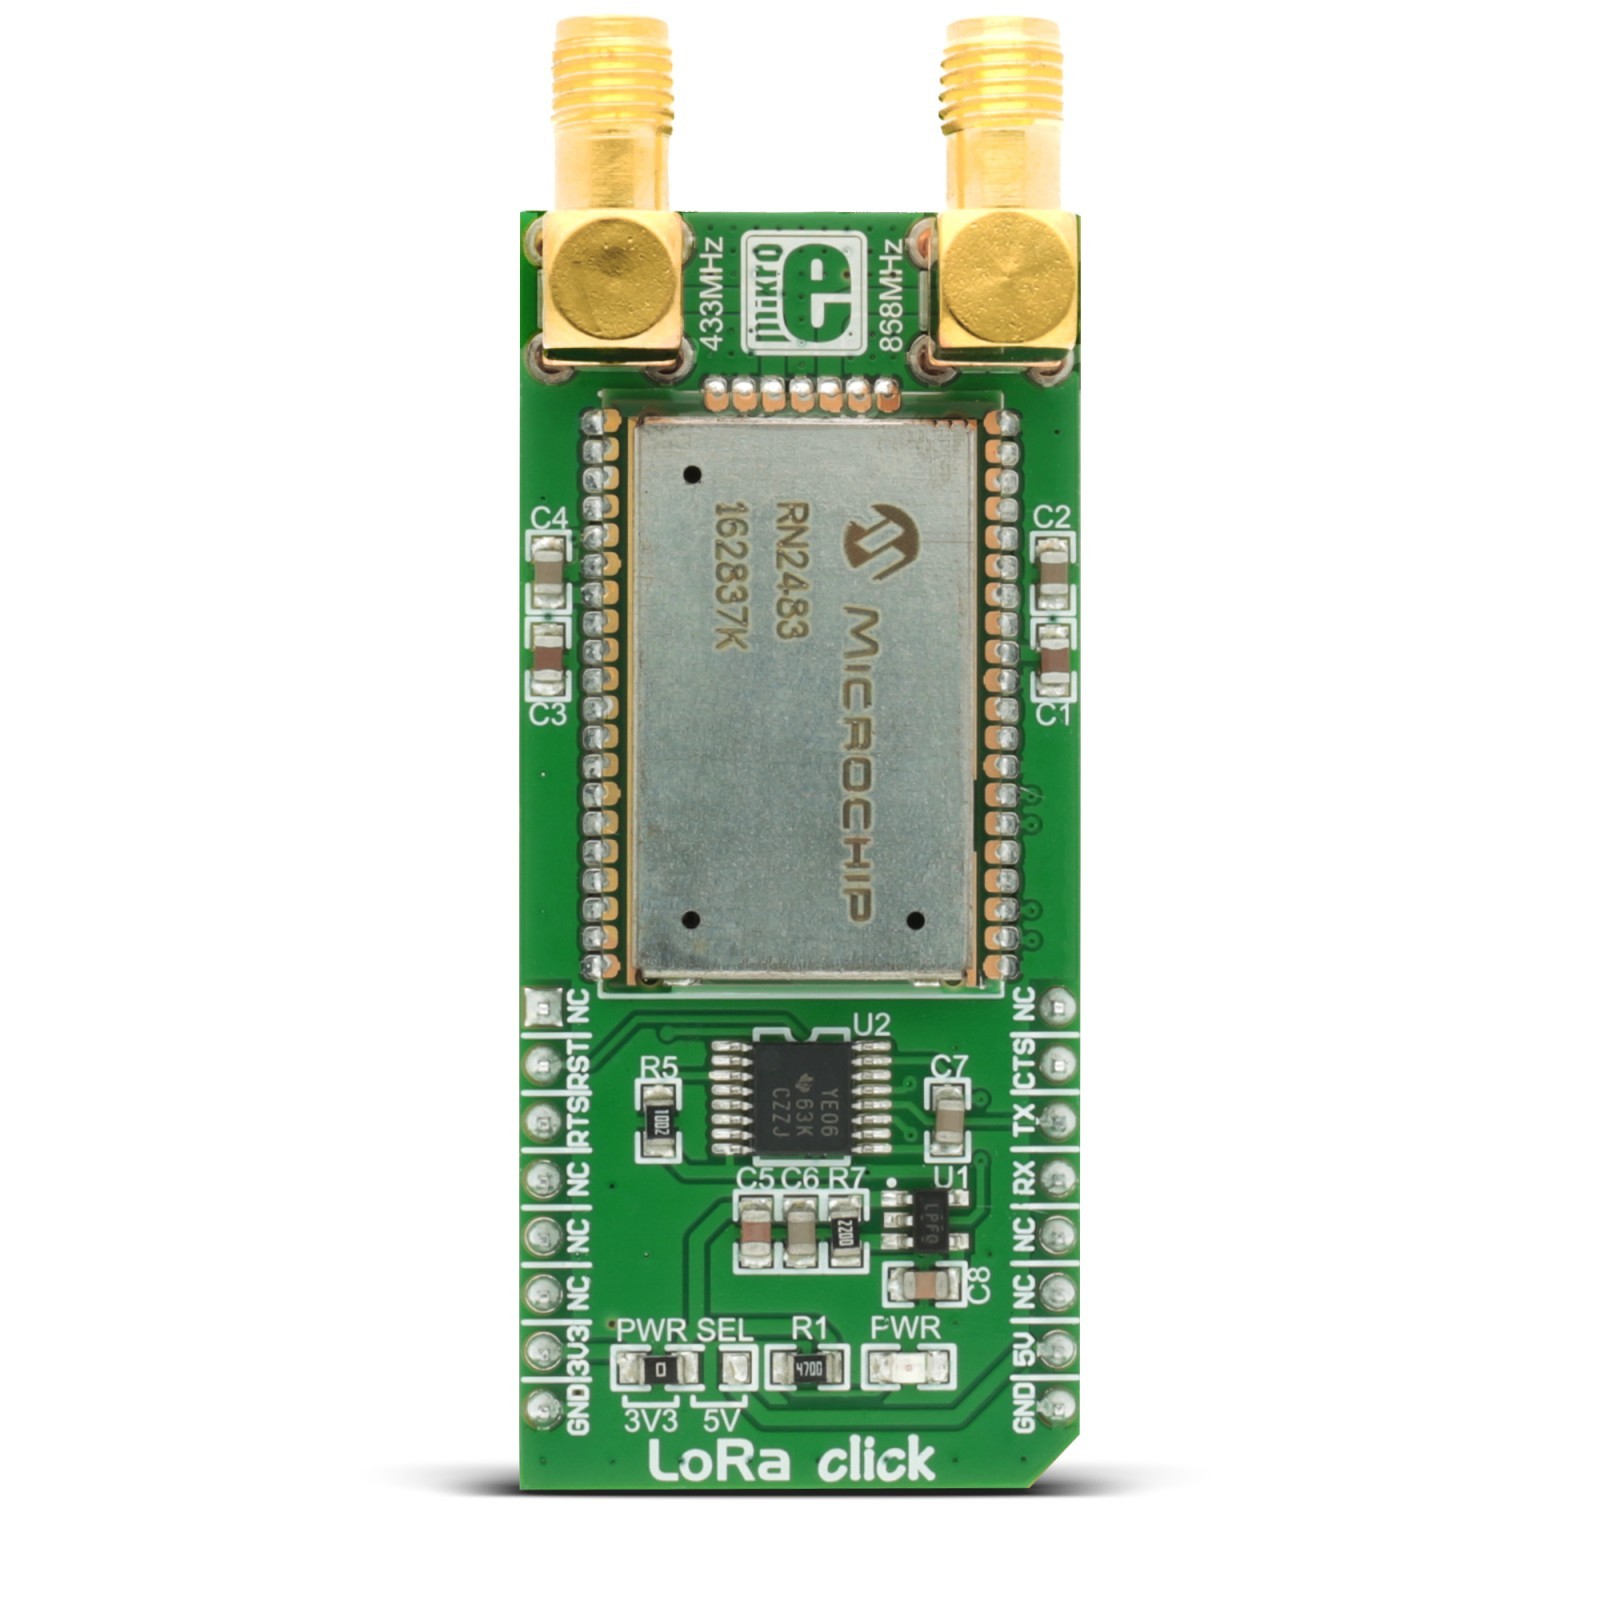 Lora Click Board With Microchips Rn2483 Sub Ghz 433 868 Mhz Raspberry Pi Serial Breakout Circuit Diagram For A Mgctlbxnmzp Mgctlbxv5112 Mgctlbxlc Mgctlbxpprestashop